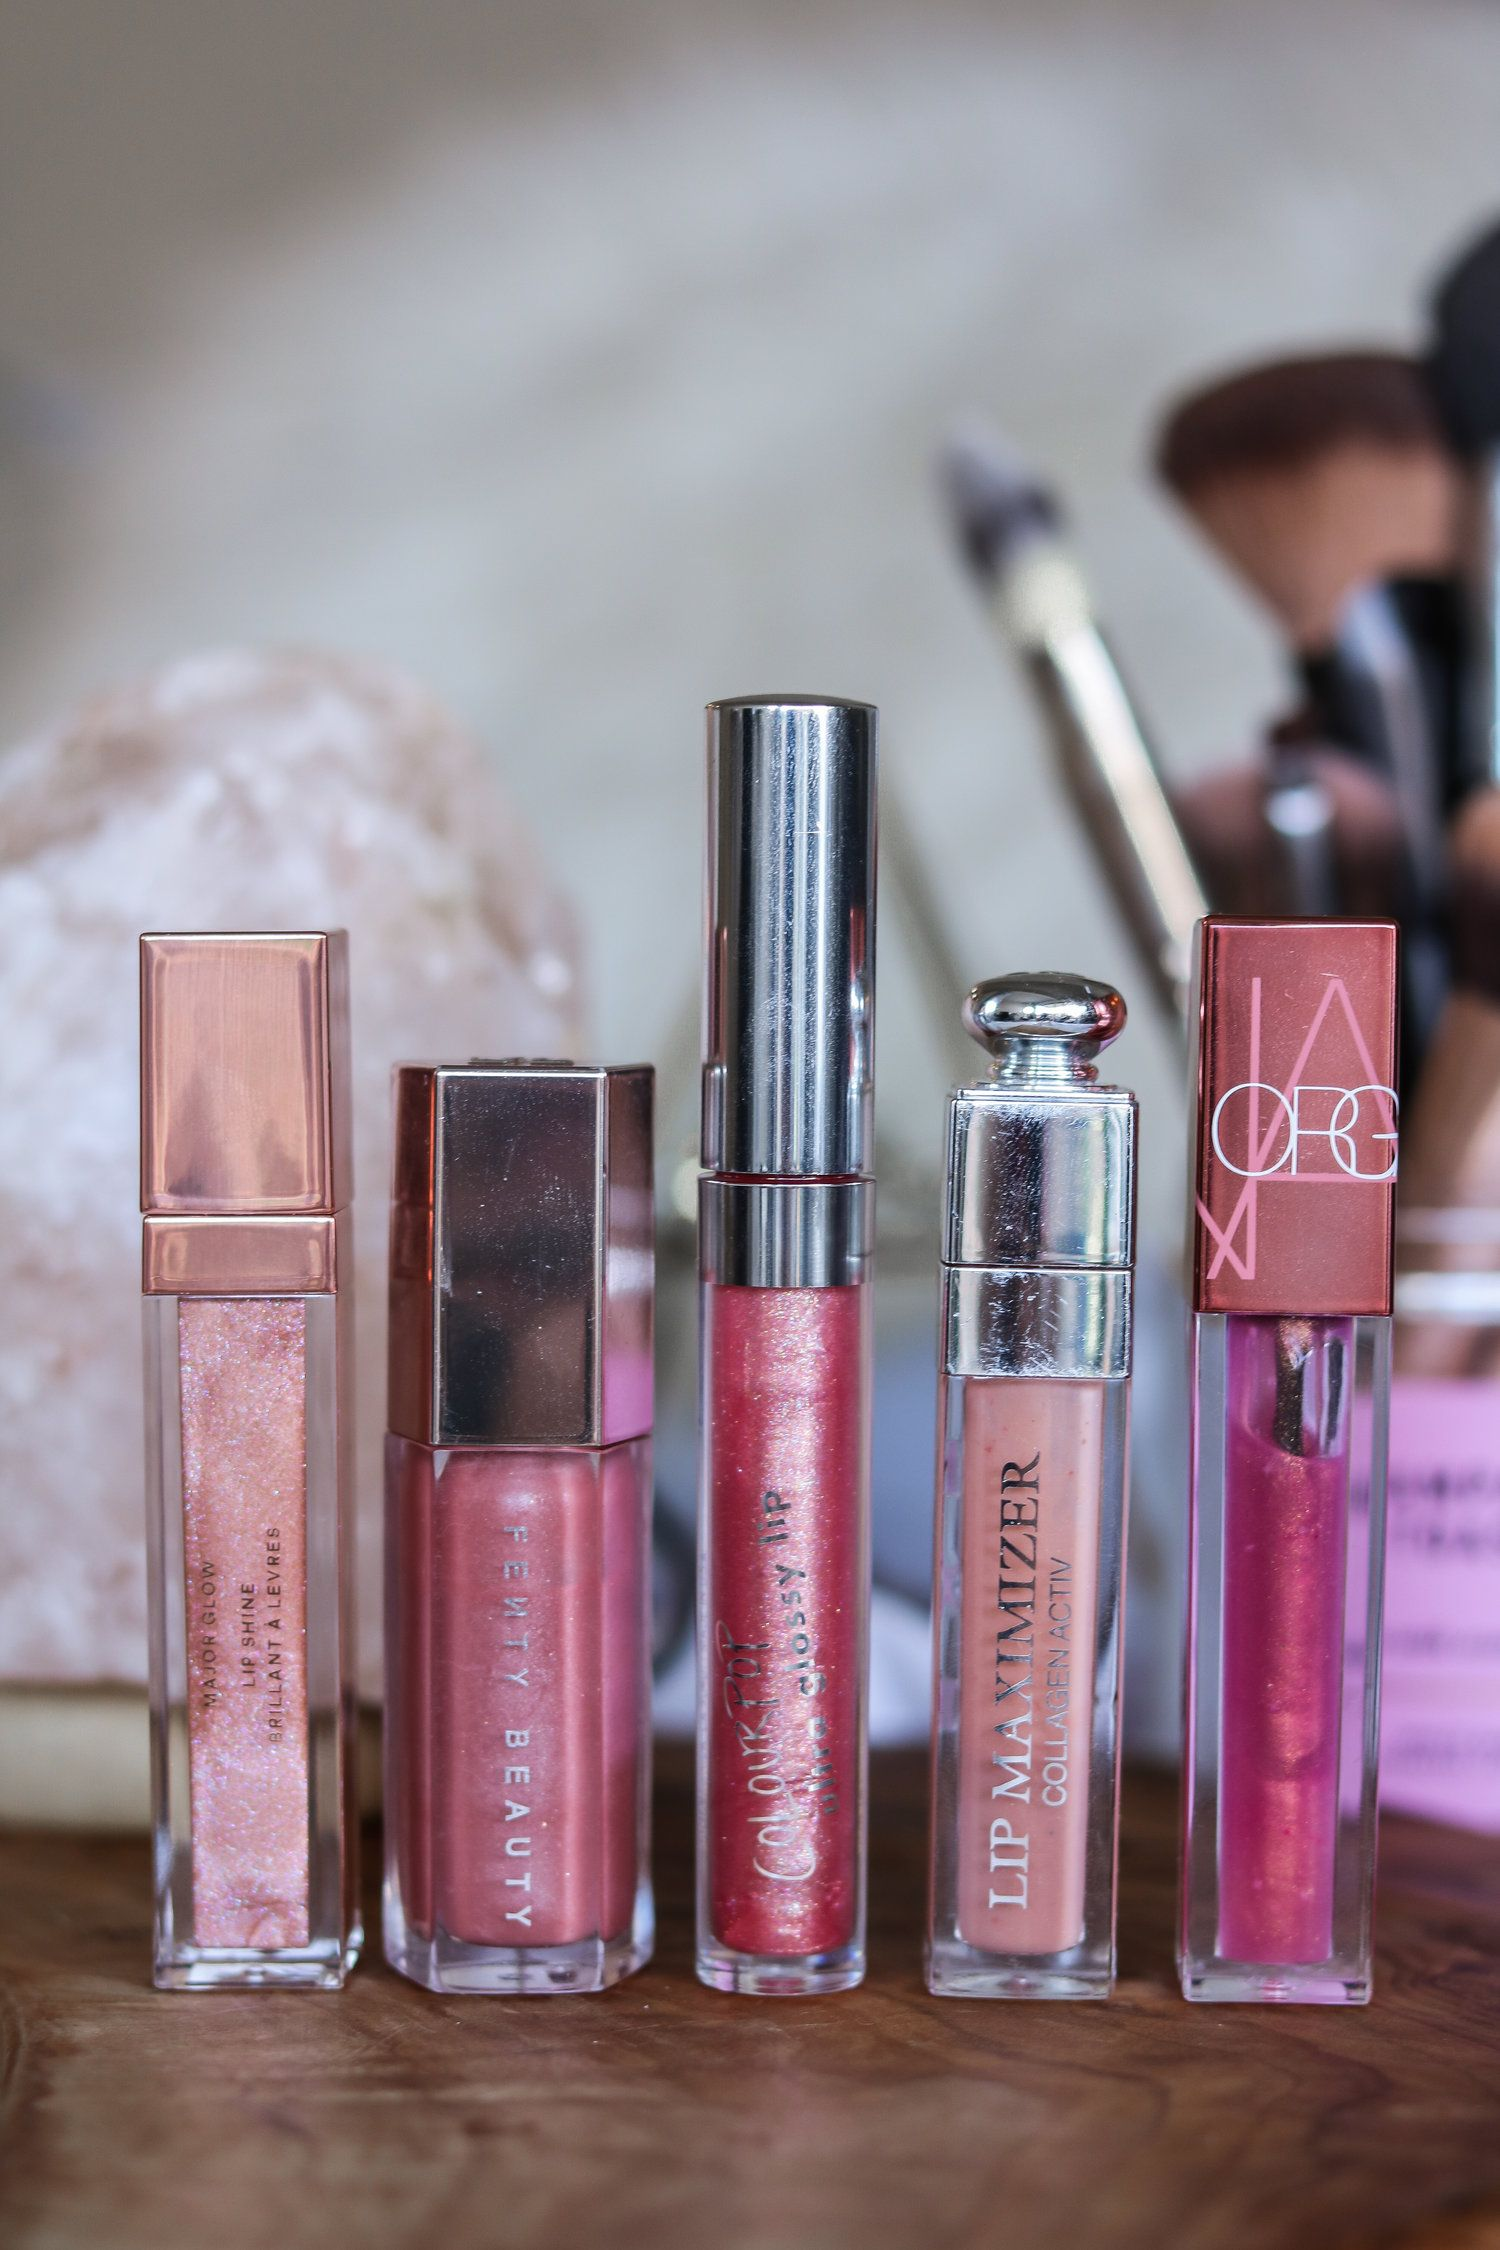 MY TOP 5 FAVE LIP GLOSSES THIS SUMMER (NonSticky